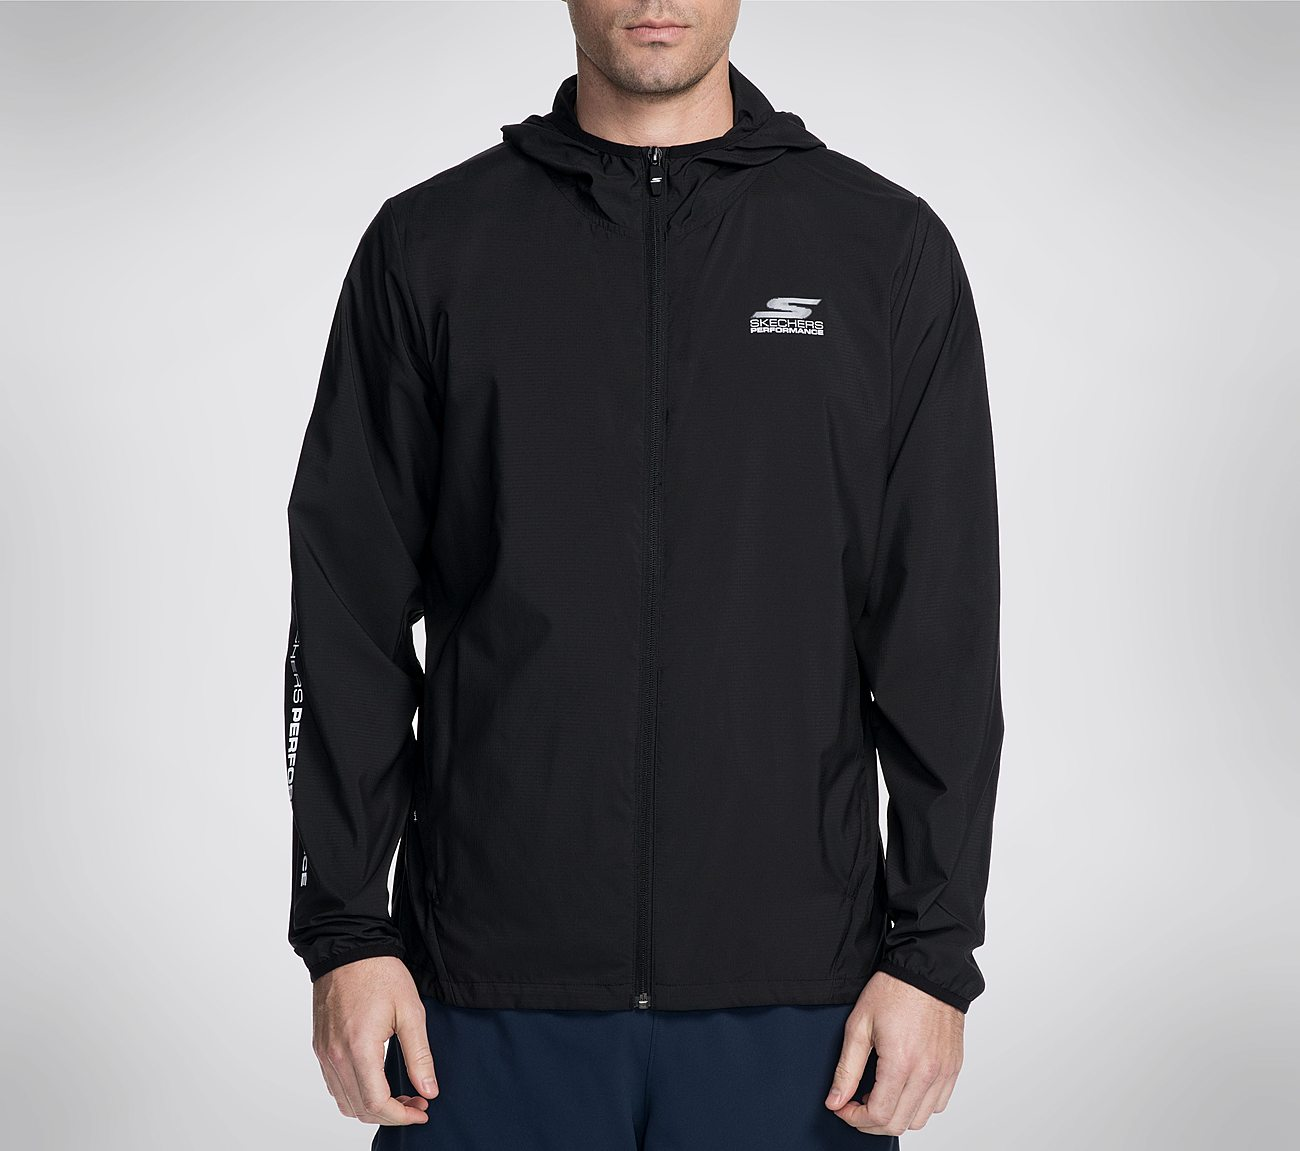 Skechers GOwalk Ace Jacket